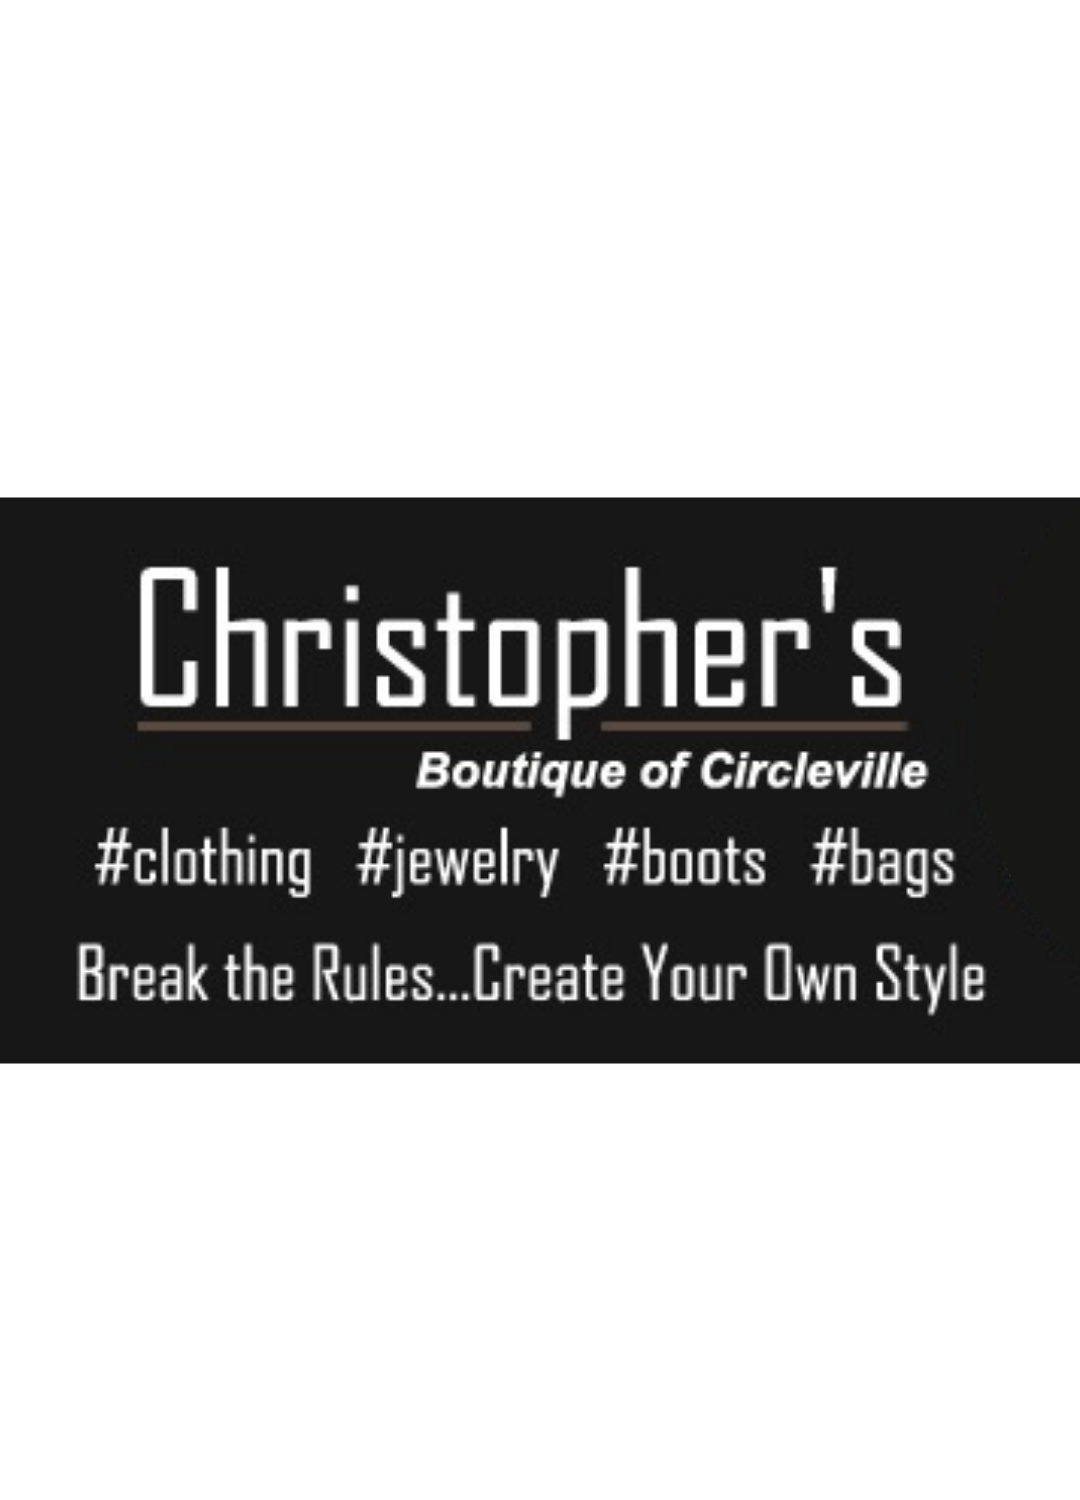 BuDhaGirl's July Store of the Month: Christopher's Boutique